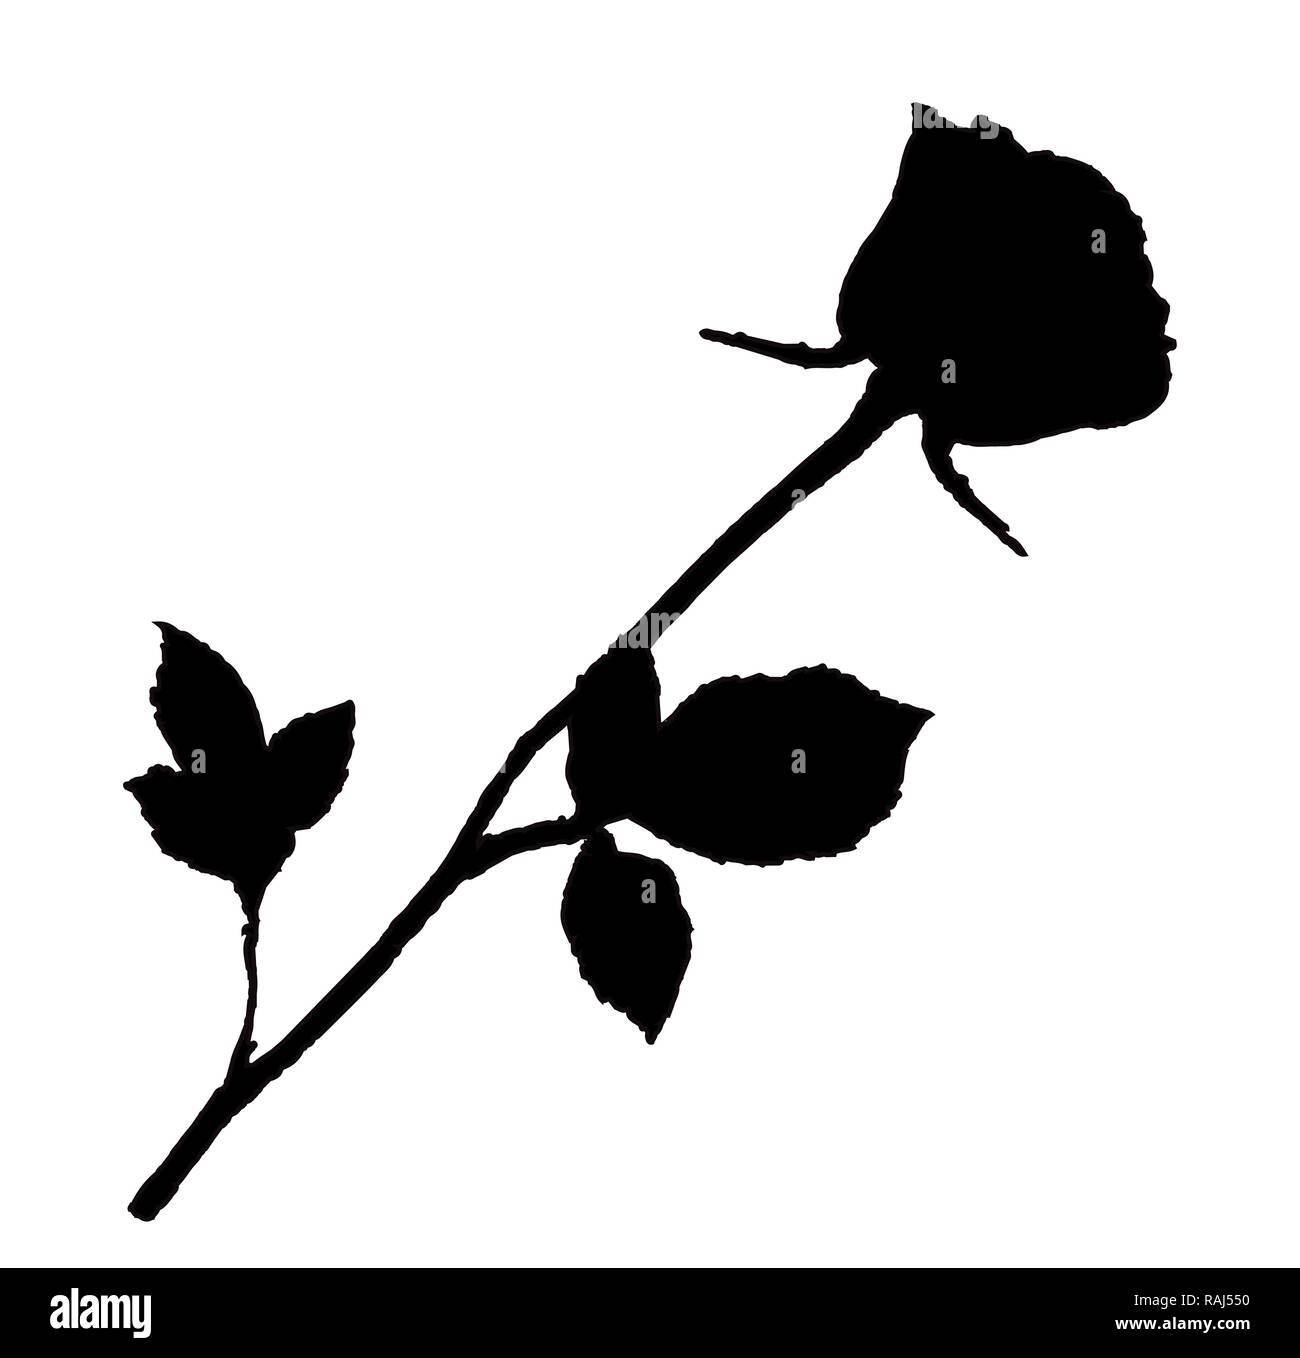 Black silhouette of rose flower isolated on white background. Beautiful bud of rose on long stem. Monochrome   illustration, sign, symbol, clip art fo - Stock Image